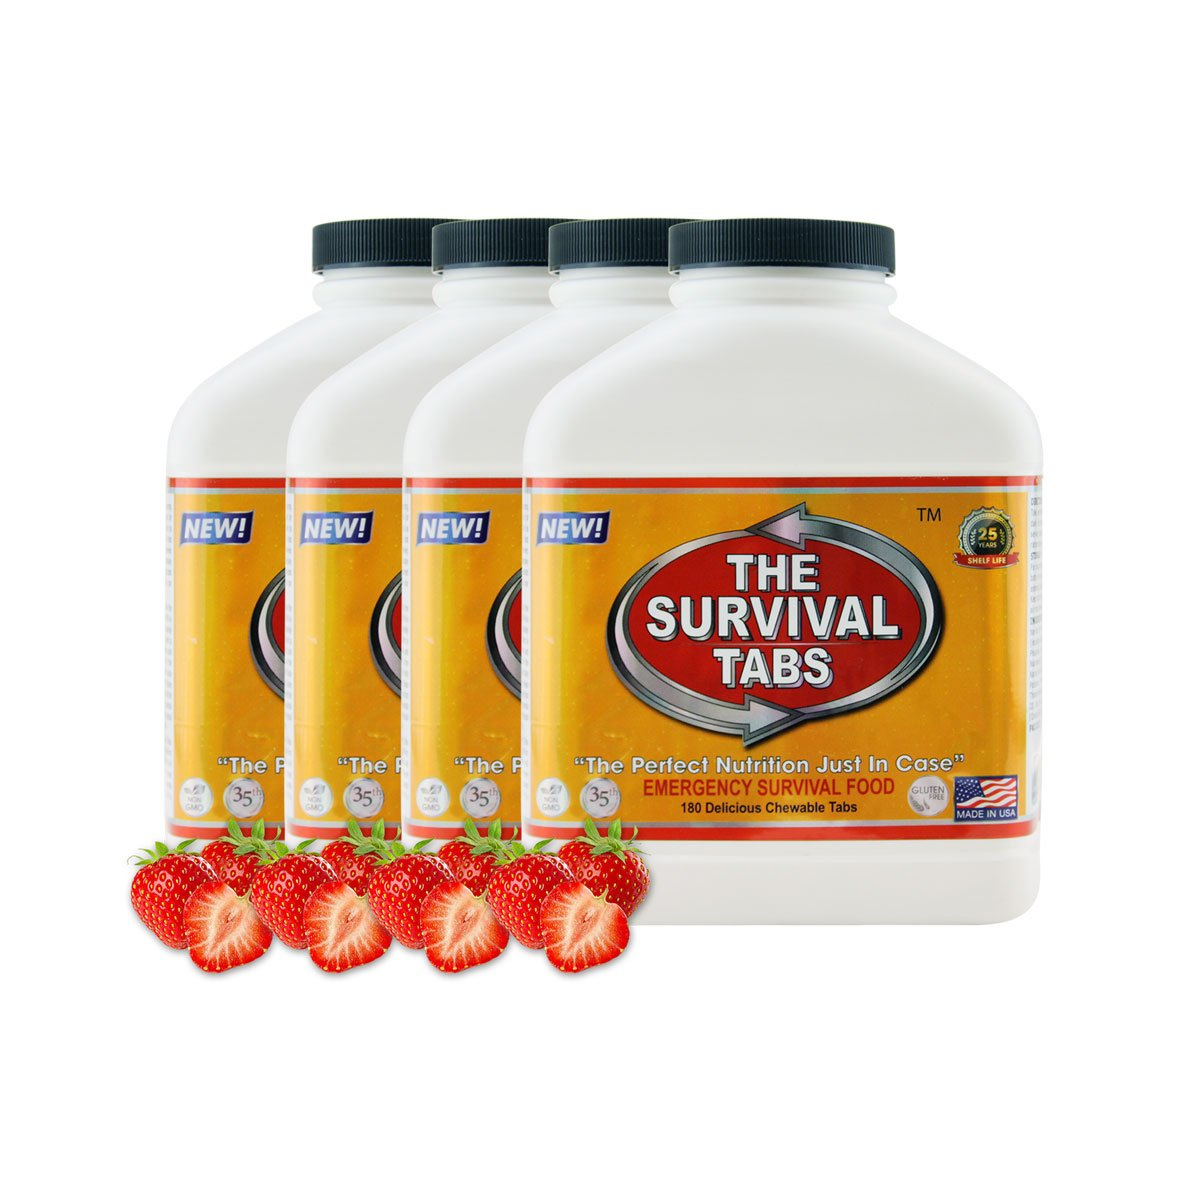 Survival Tabs 60-day Food Supply Emergency Food Ration 720 tabs Survival MREs for Disaster Preparedness for Earthquake Flood Tsunami Gluten Free and Non-GMO 25 Years Shelf Life - Strawberry Flavor by The Survival Tabs